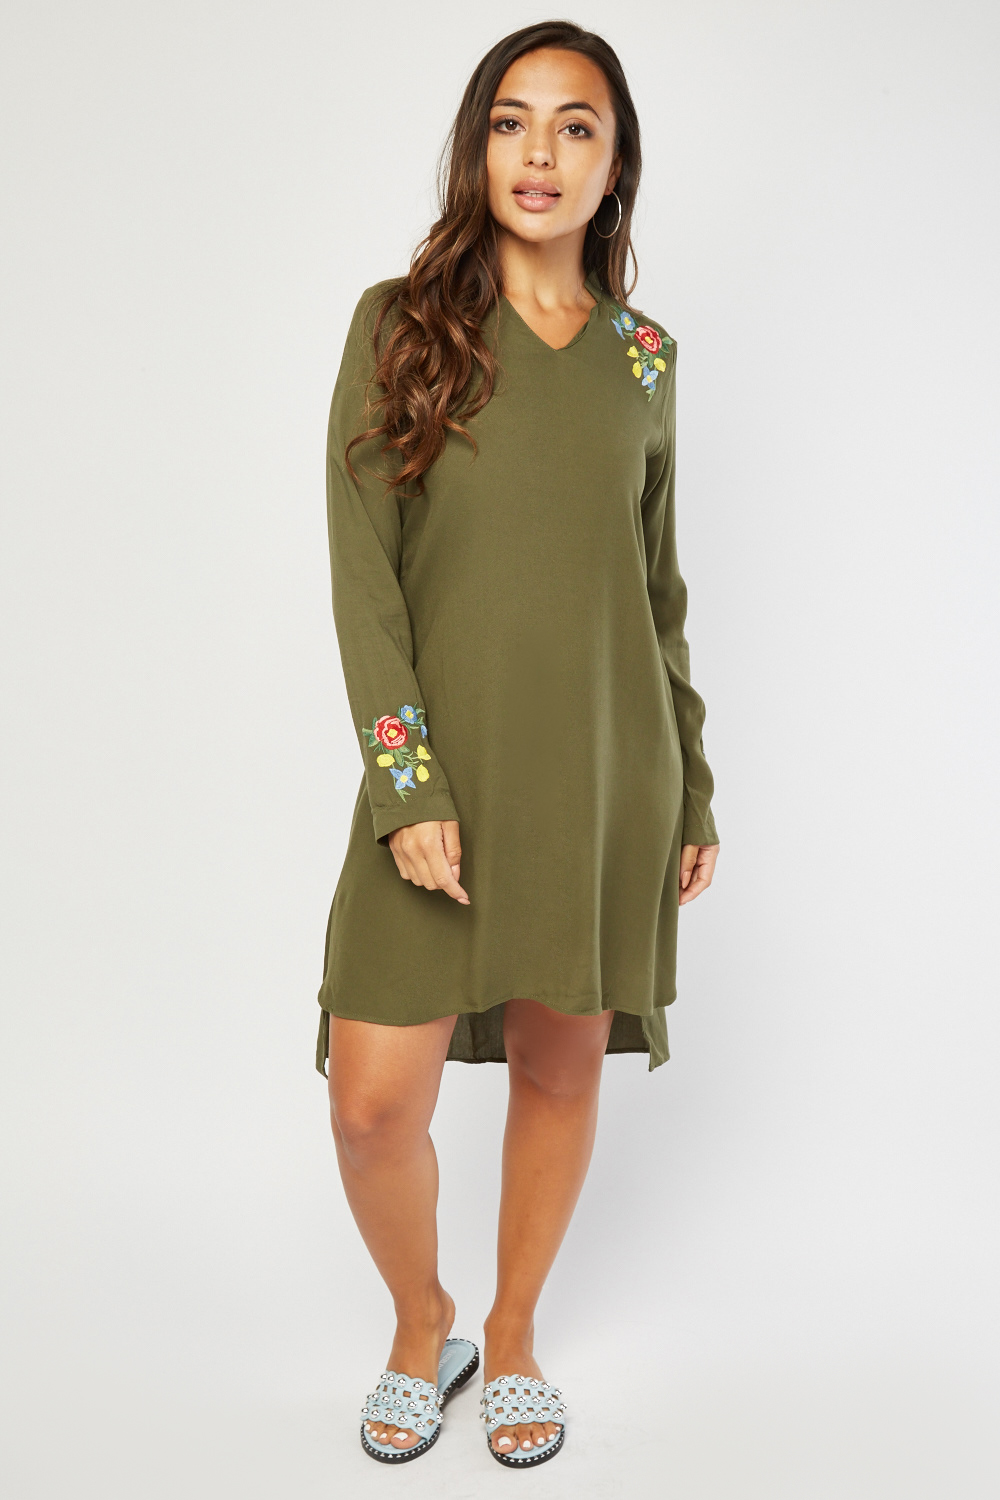 820f9df194d Flower Embroidered Tunic Dress - Just £5